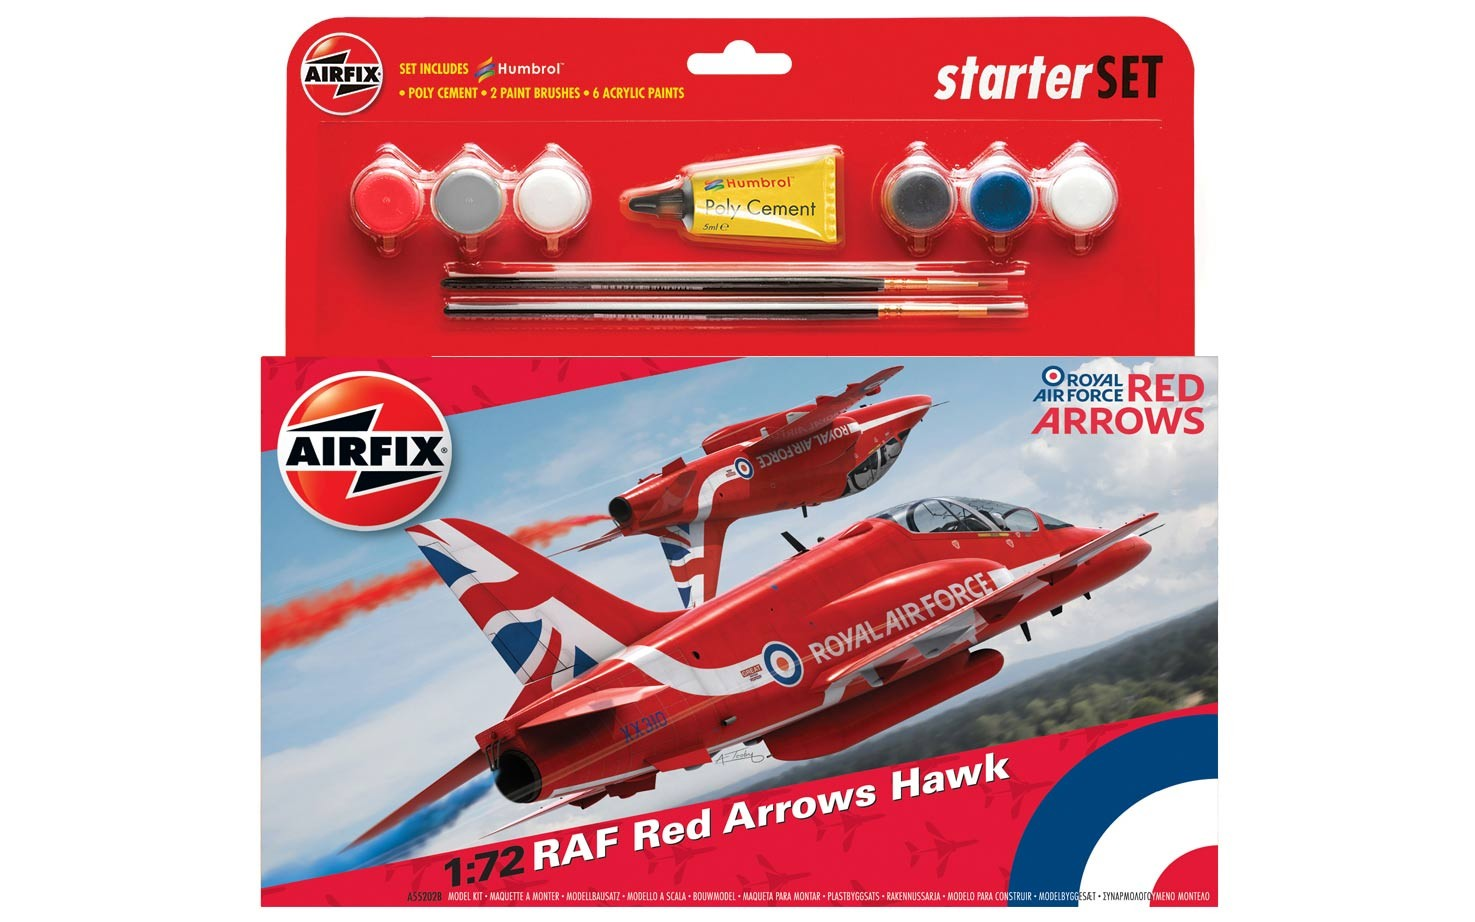 Airfix RAF Red Arrows Hawk 2015 Starter Set 1:72